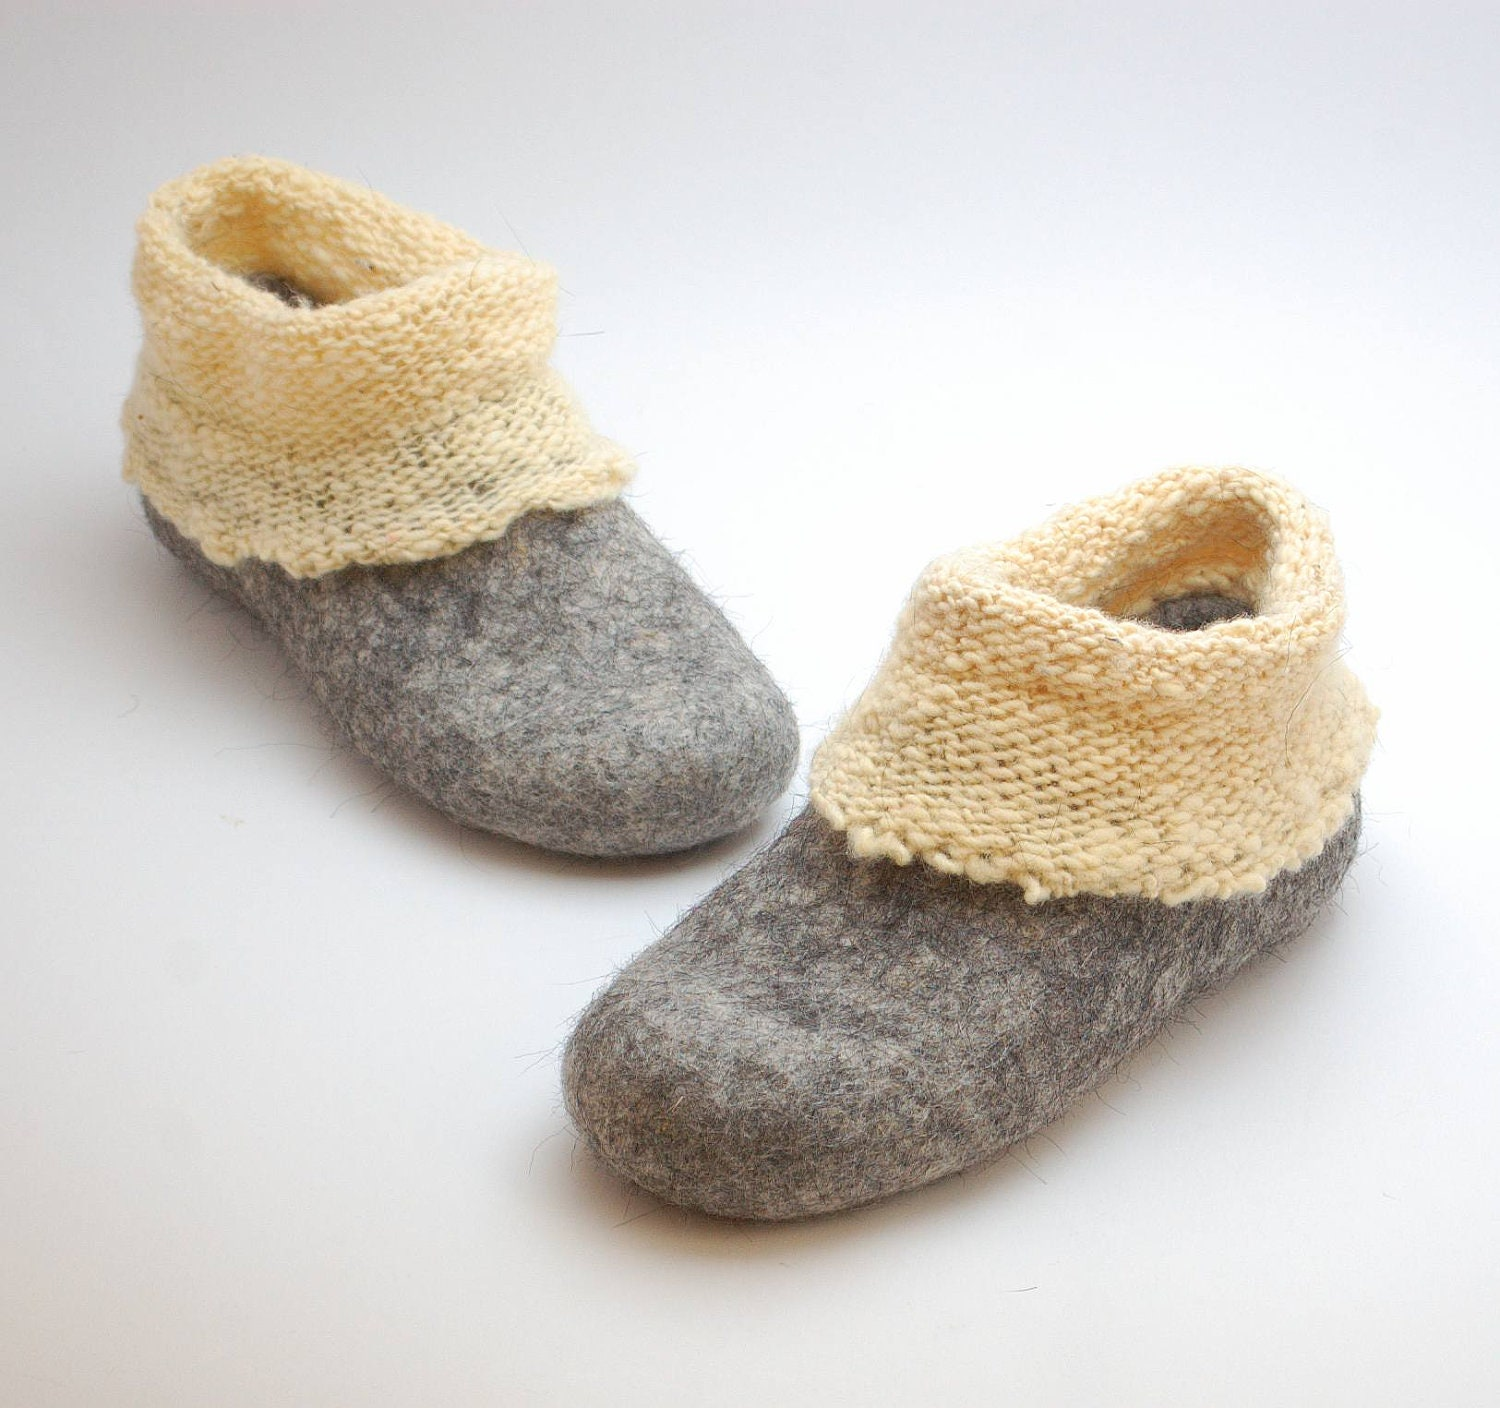 Felt wool slipper boots with knitted ankle organic wool felt